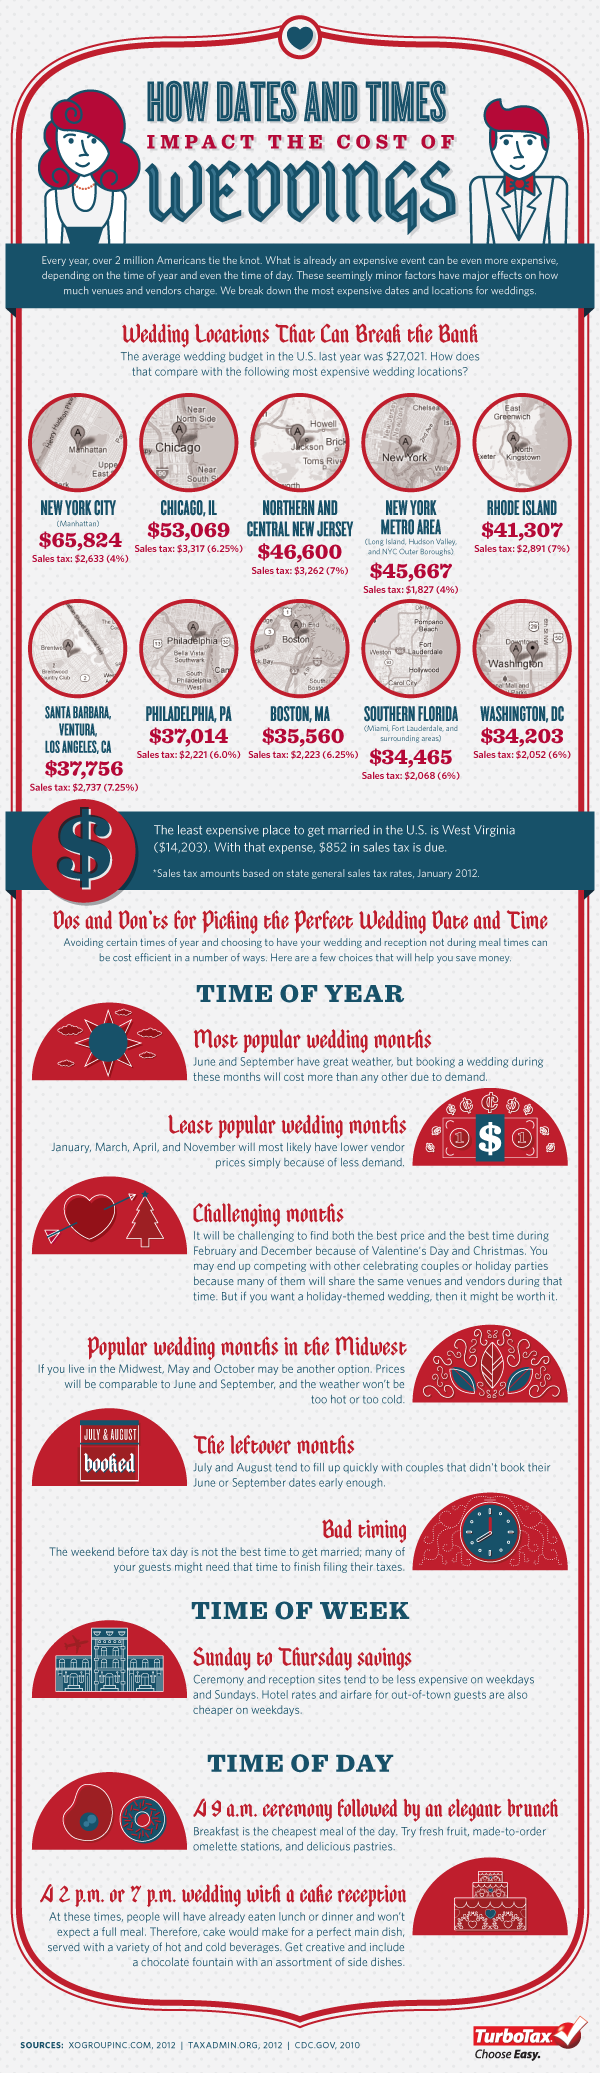 Wedding Dates Times infographic